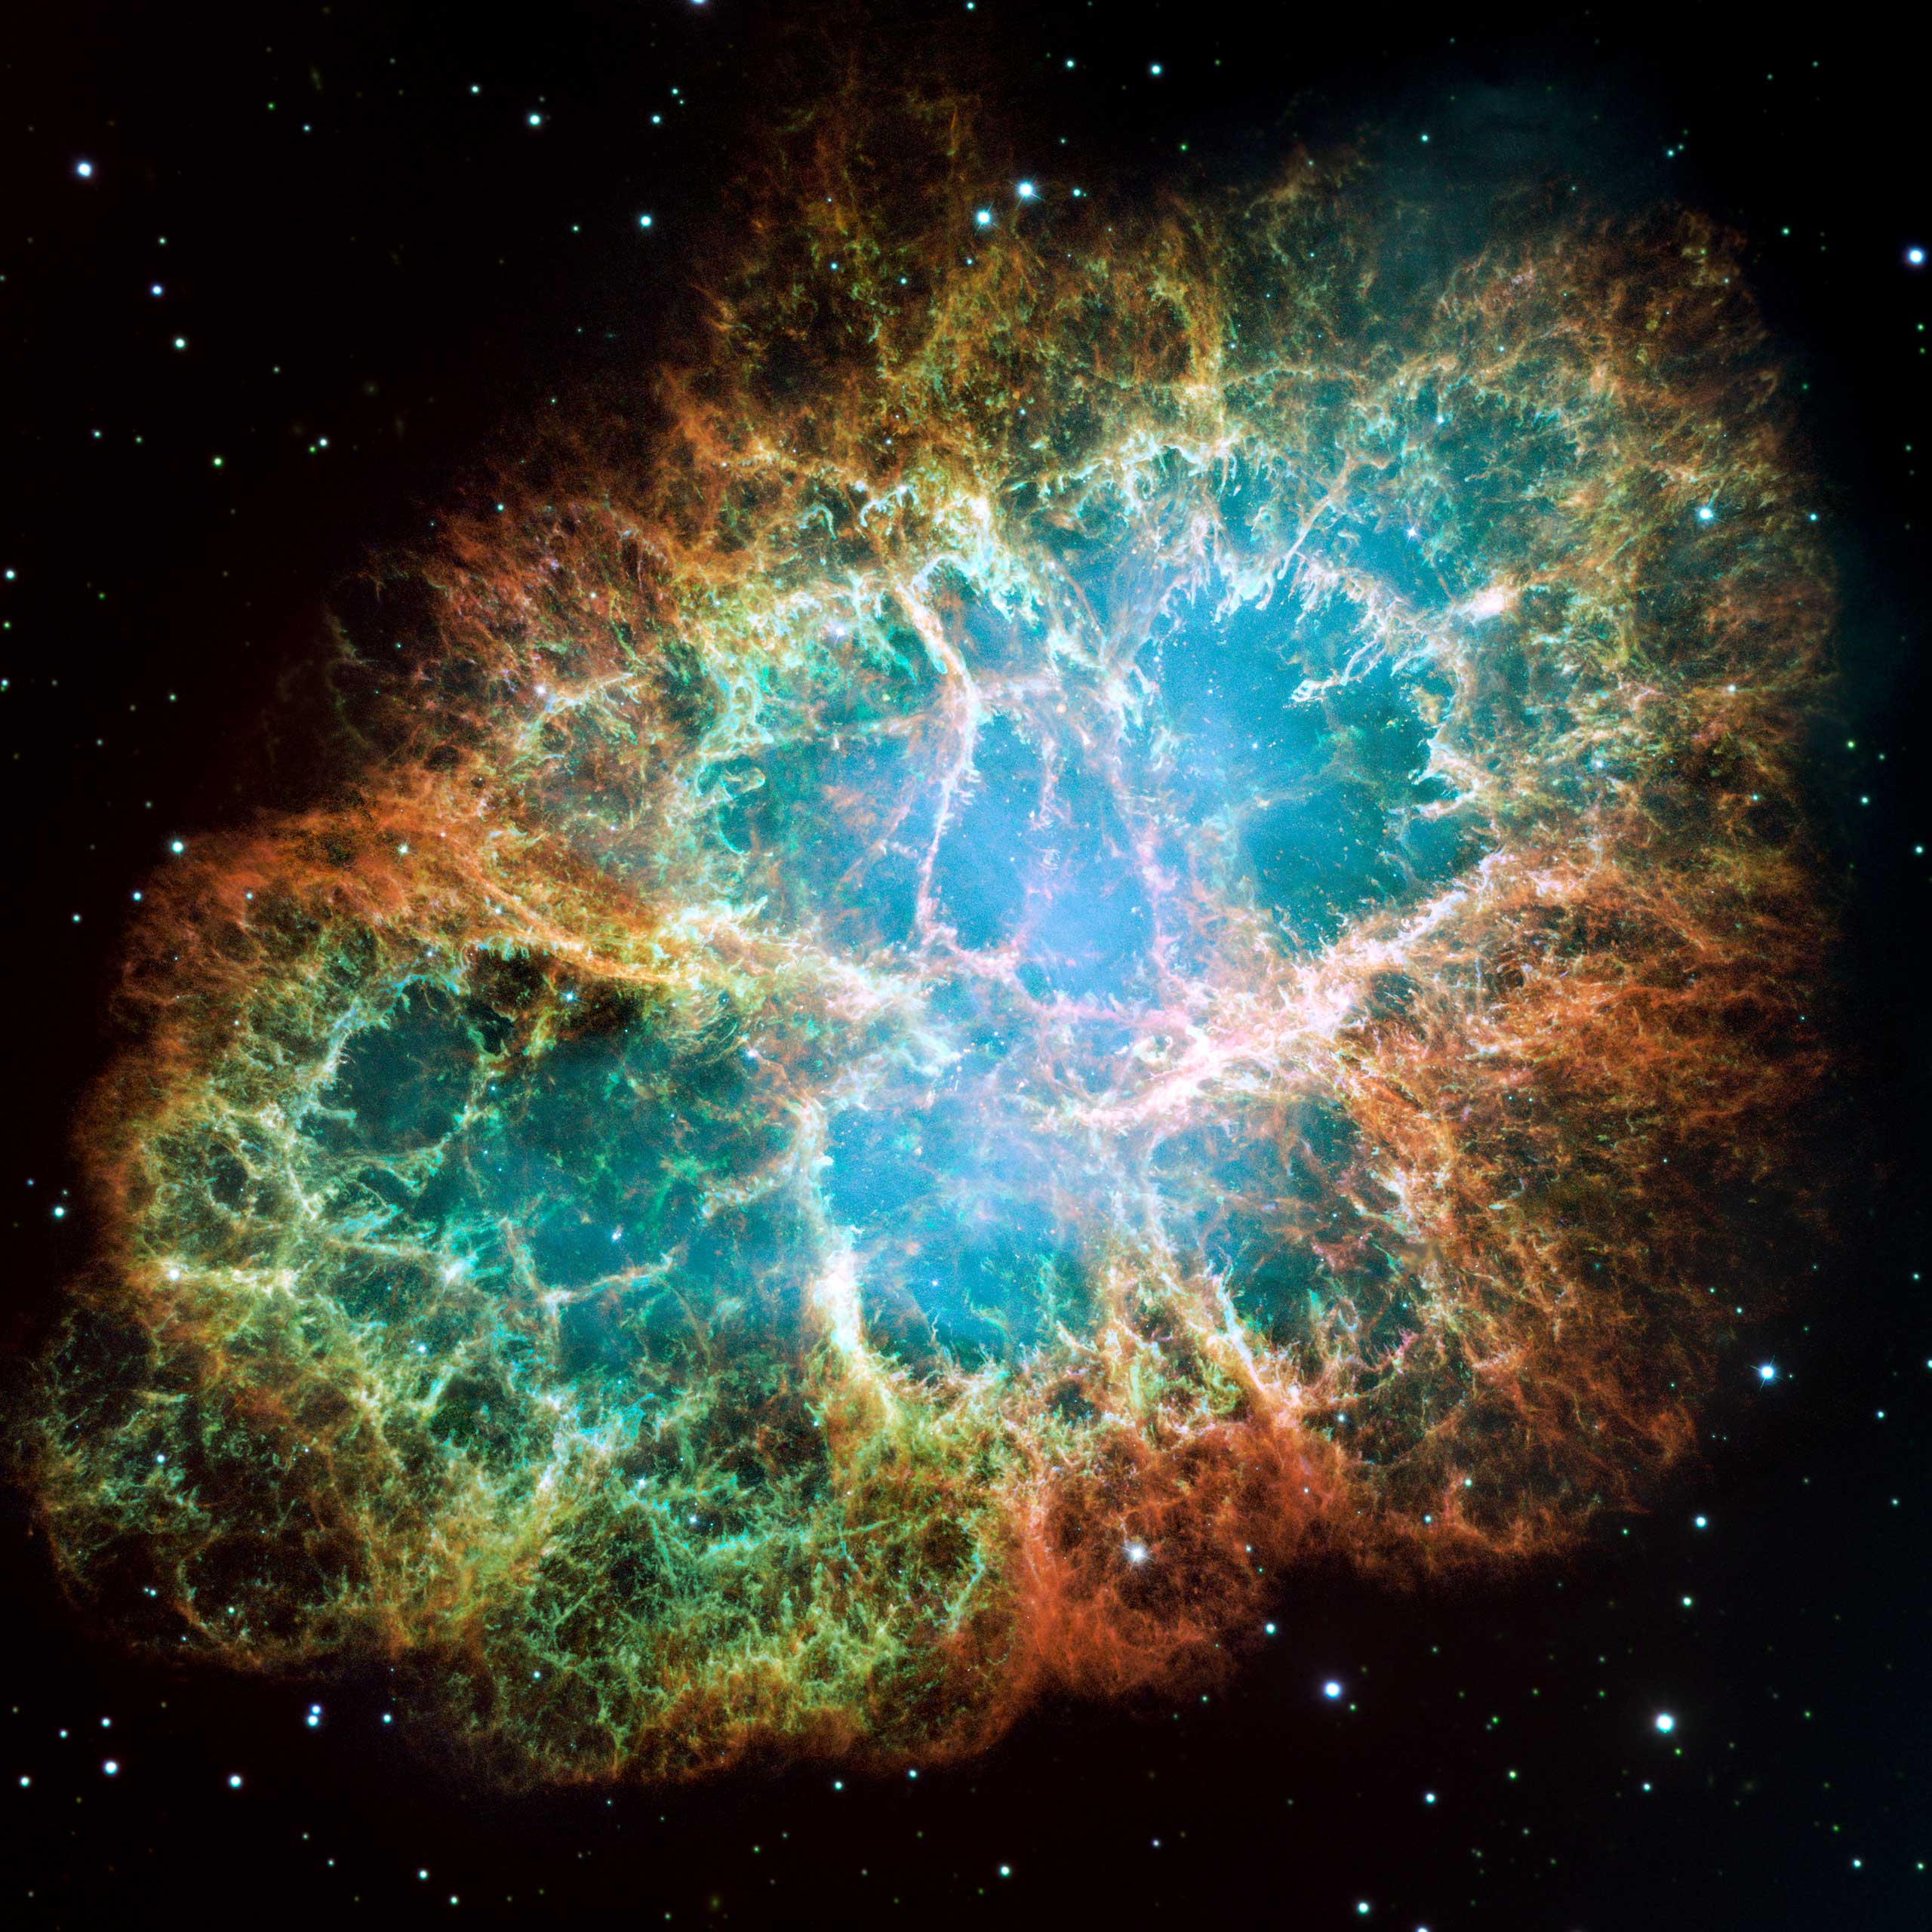 The Crab Nebula :                                                              A six-light-year-wide expanding remnant of a star's supernova explosion. This composite image was assembled from 24 individual exposures taken with the NASA Hubble Space Telescope's Wide Field. It is one of the largest images taken by Hubble and is the highest resolution image ever made of the entire Crab Nebula.                                                              Image released on Dec. 1, 2005